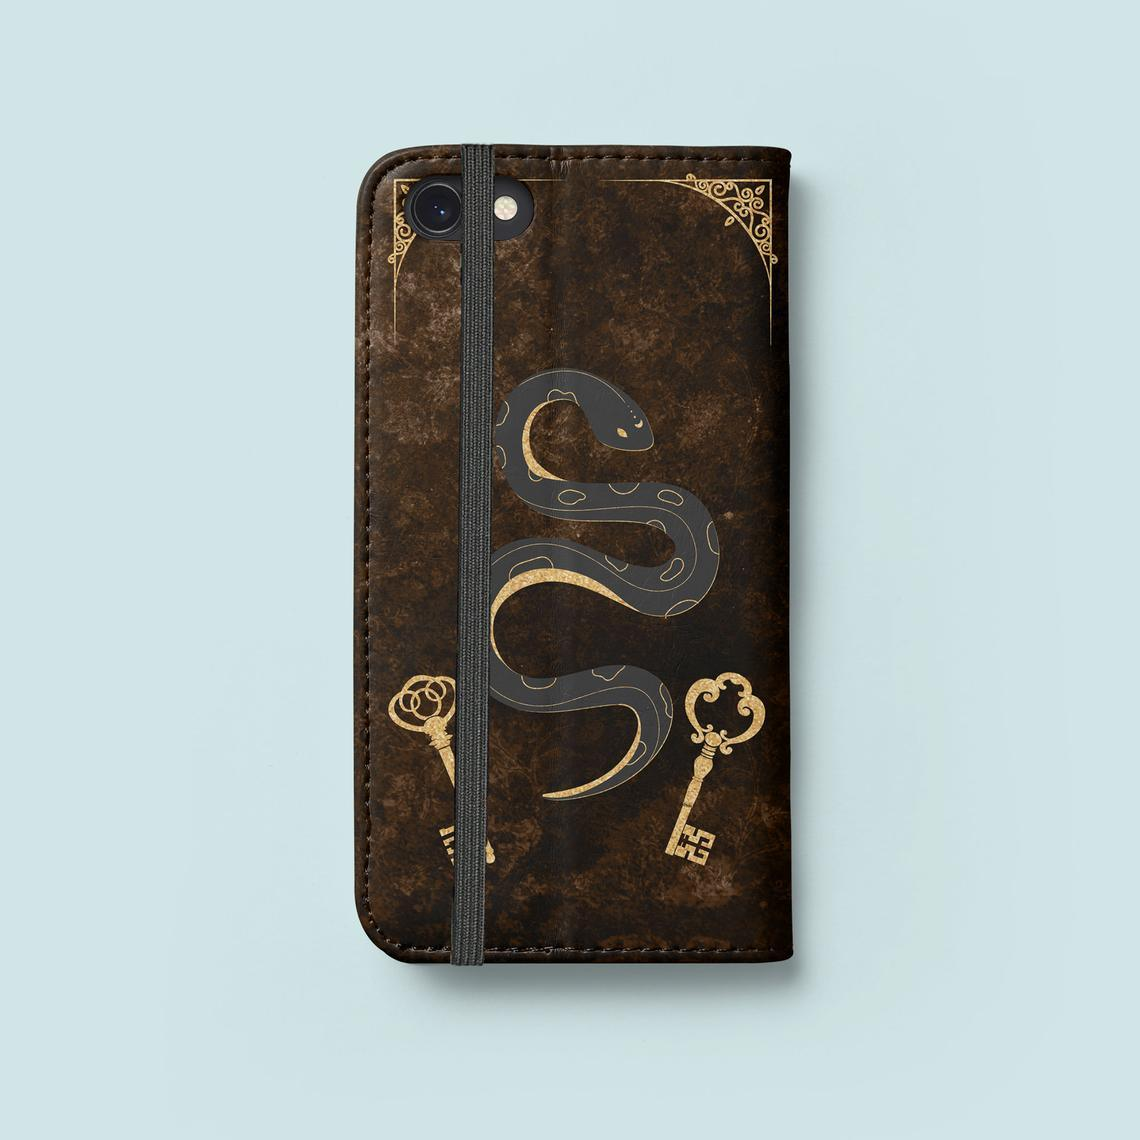 Hekate Strophalos Spell Book Phone Wallet Case